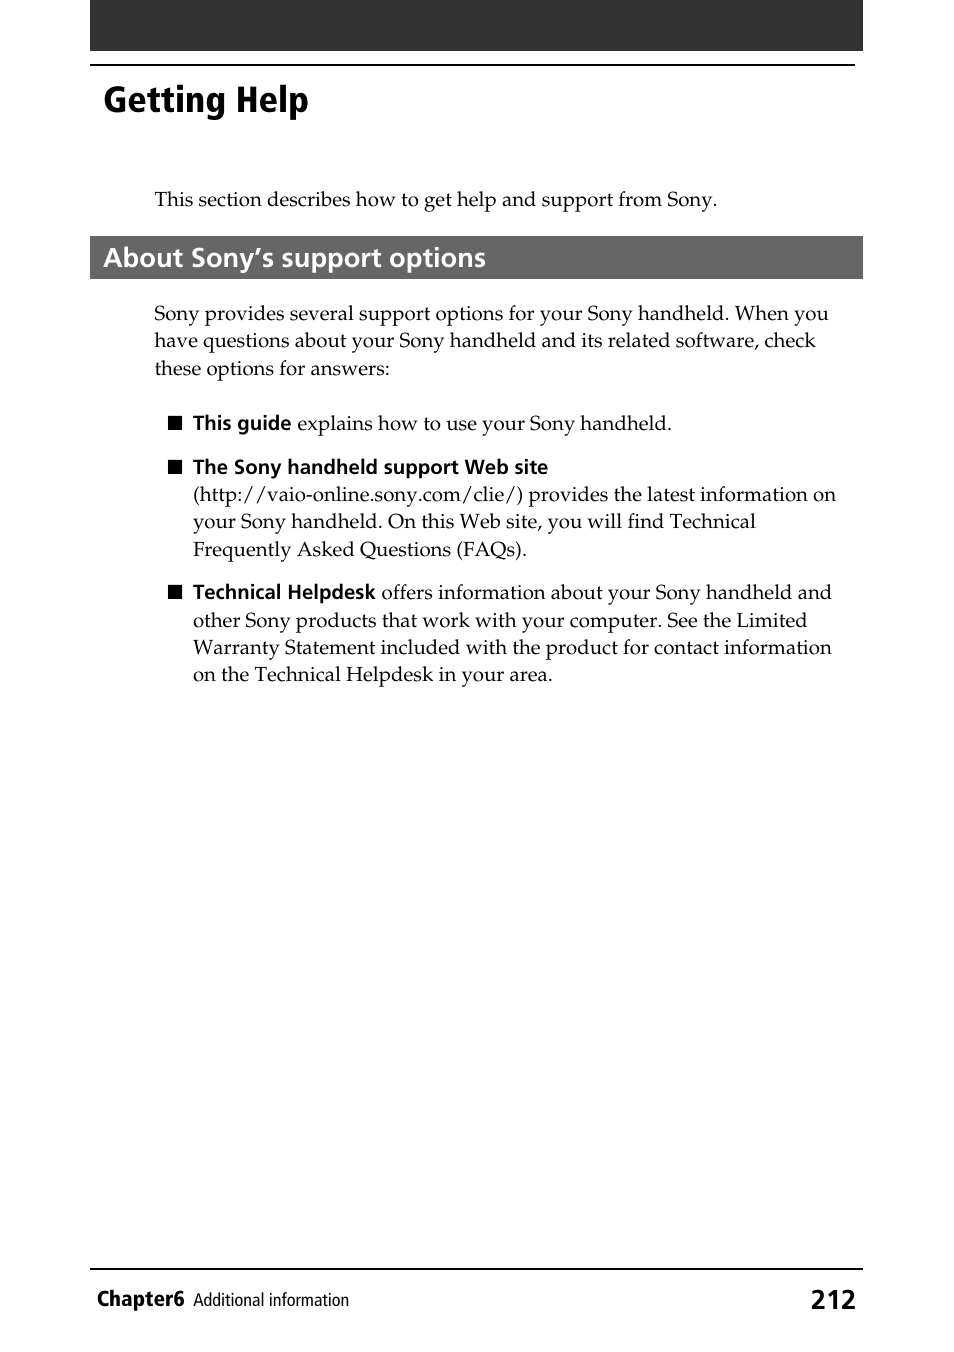 Getting help, About sony's support options, About sony's support options | Sony PEG-T415G User Manual | Page 212 / 220